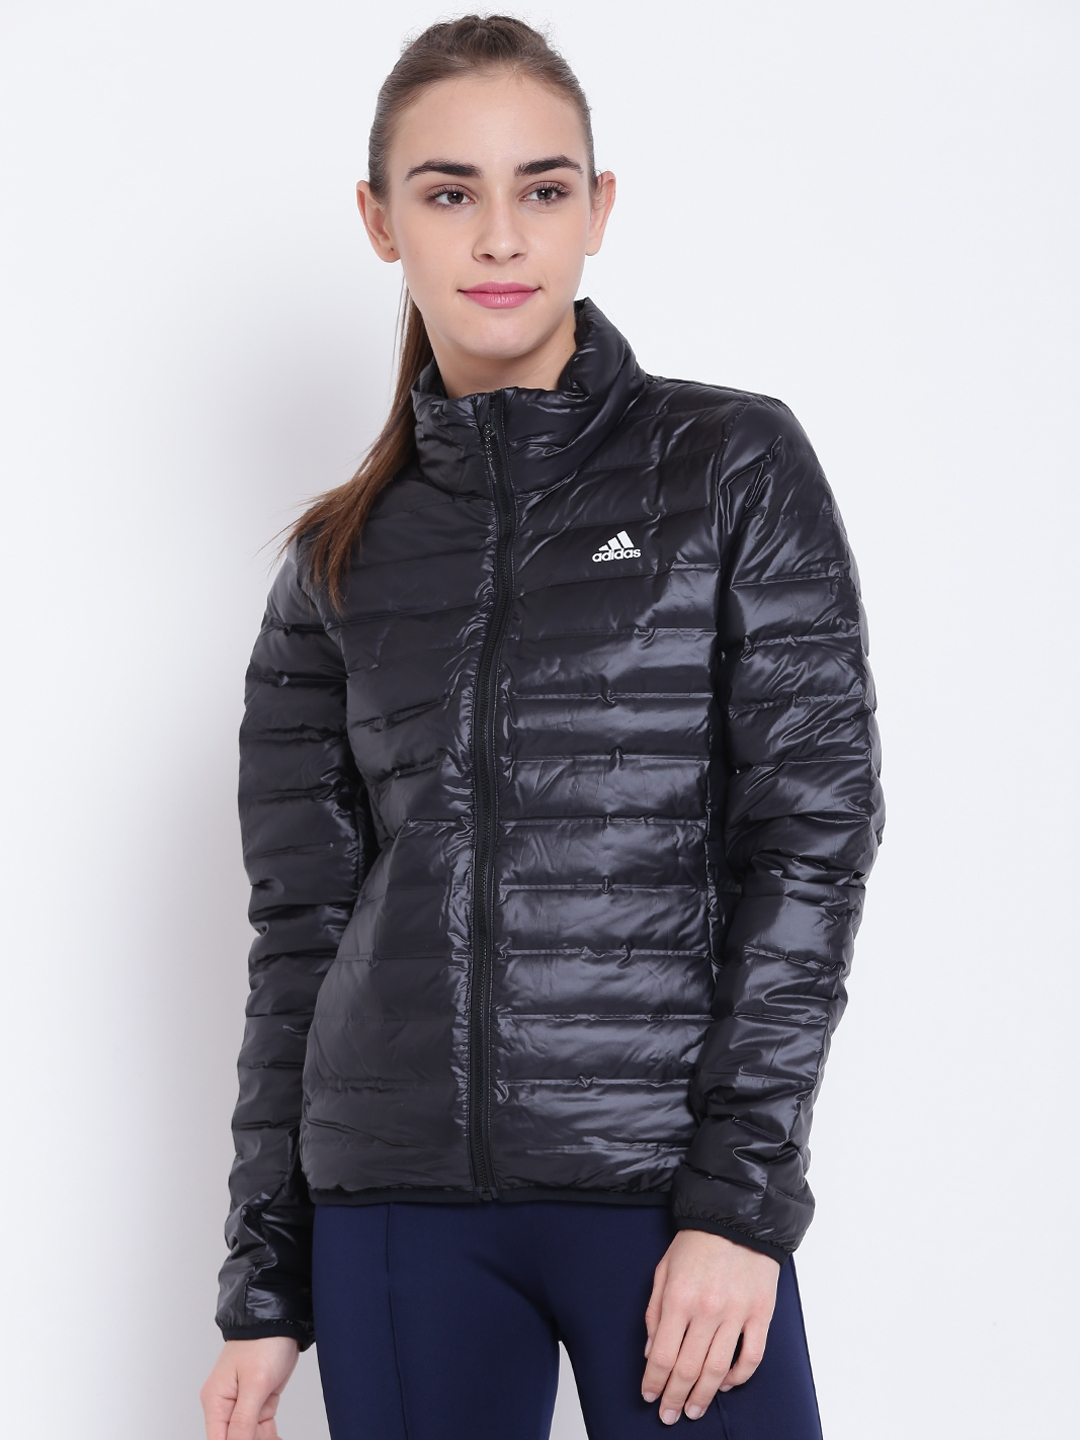 9caeaa84326a Buy ADIDAS Women Black Varilite Solid Puffer Jacket - Jackets for ...